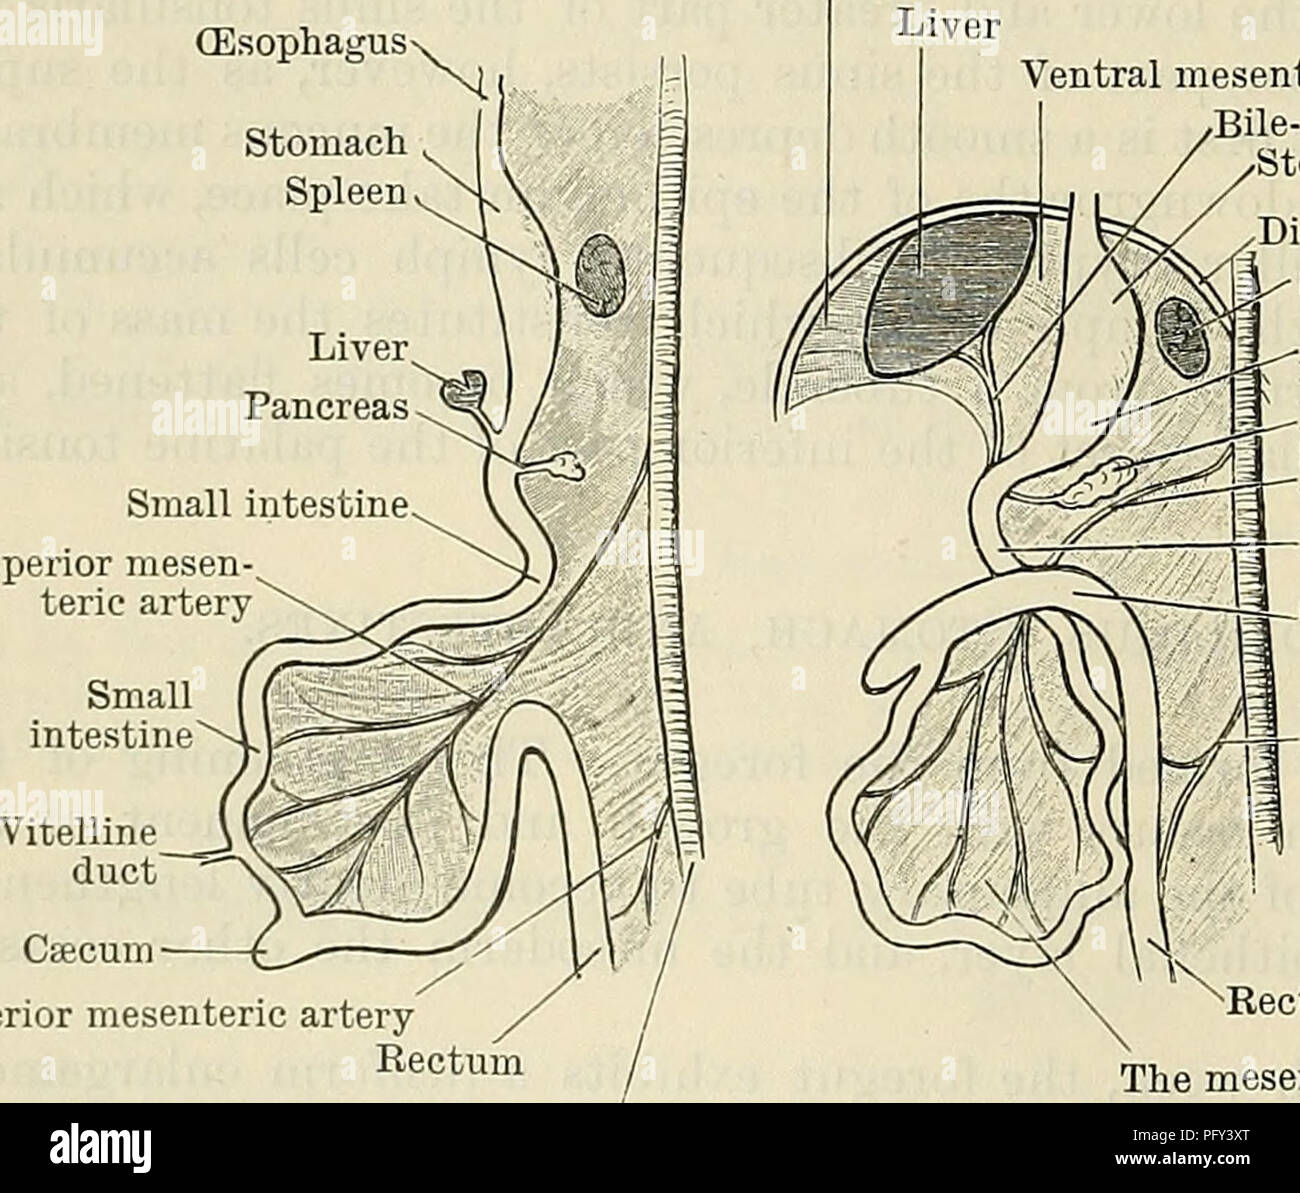 Cunninghams text book of anatomy anatomy 1250 the digestive anatomy 1250 the digestive system the abdomen already at the fifth or sixth week the adult form of the stomach is clearly indicated ccuart Image collections